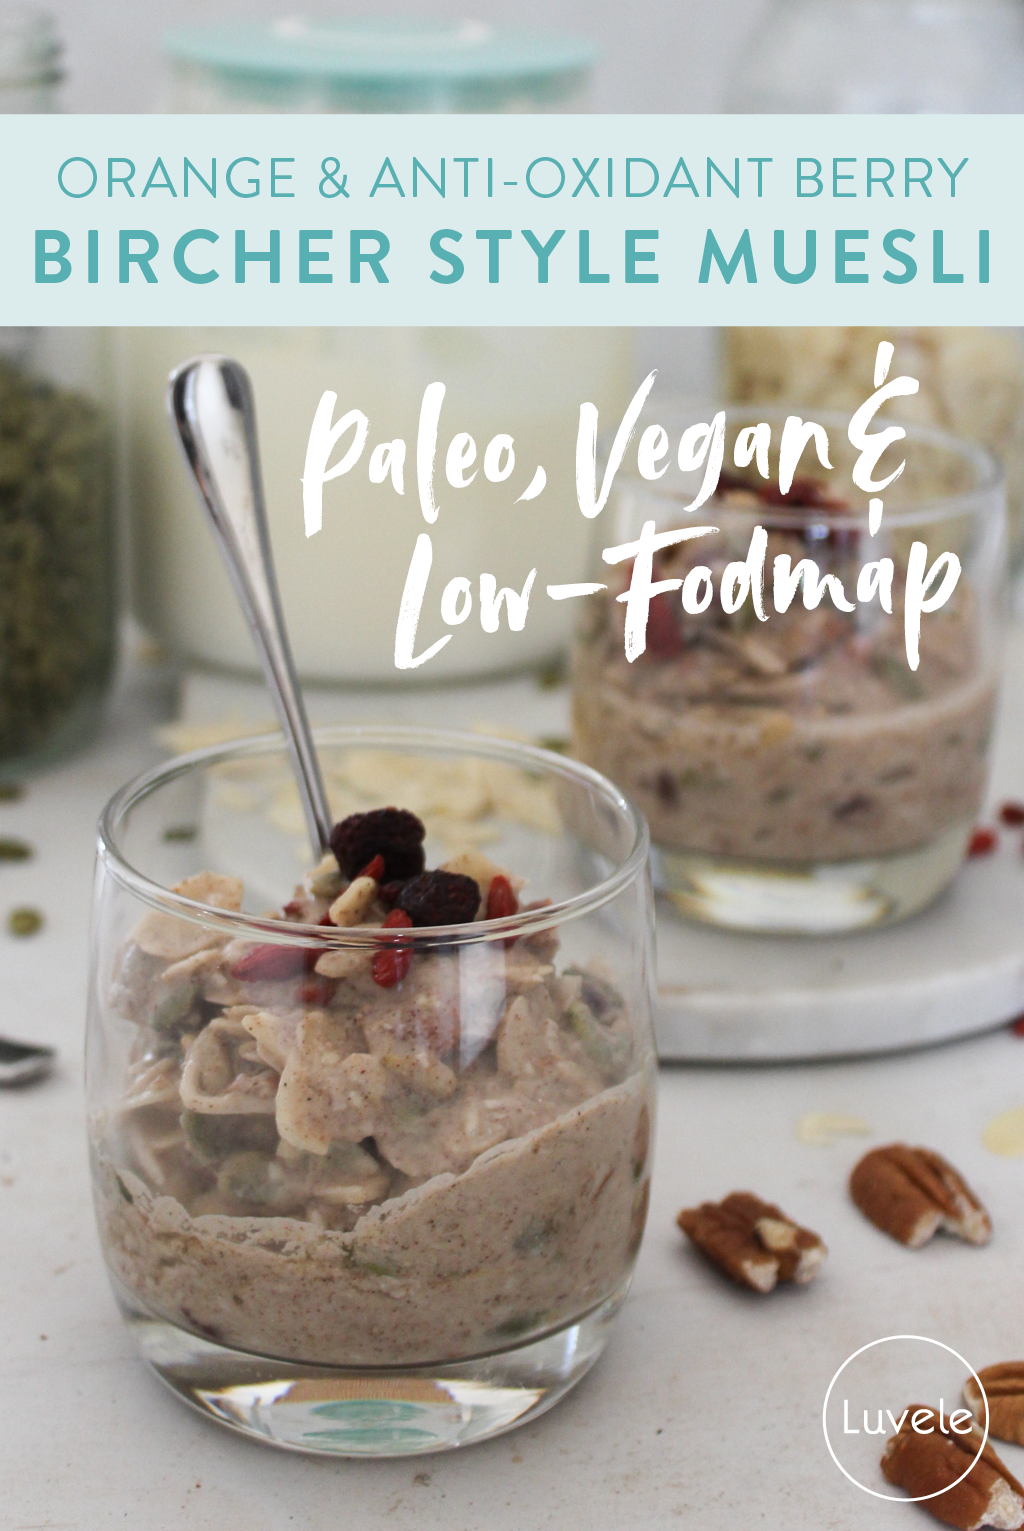 orange and anti-oxidant berry bircher muesli